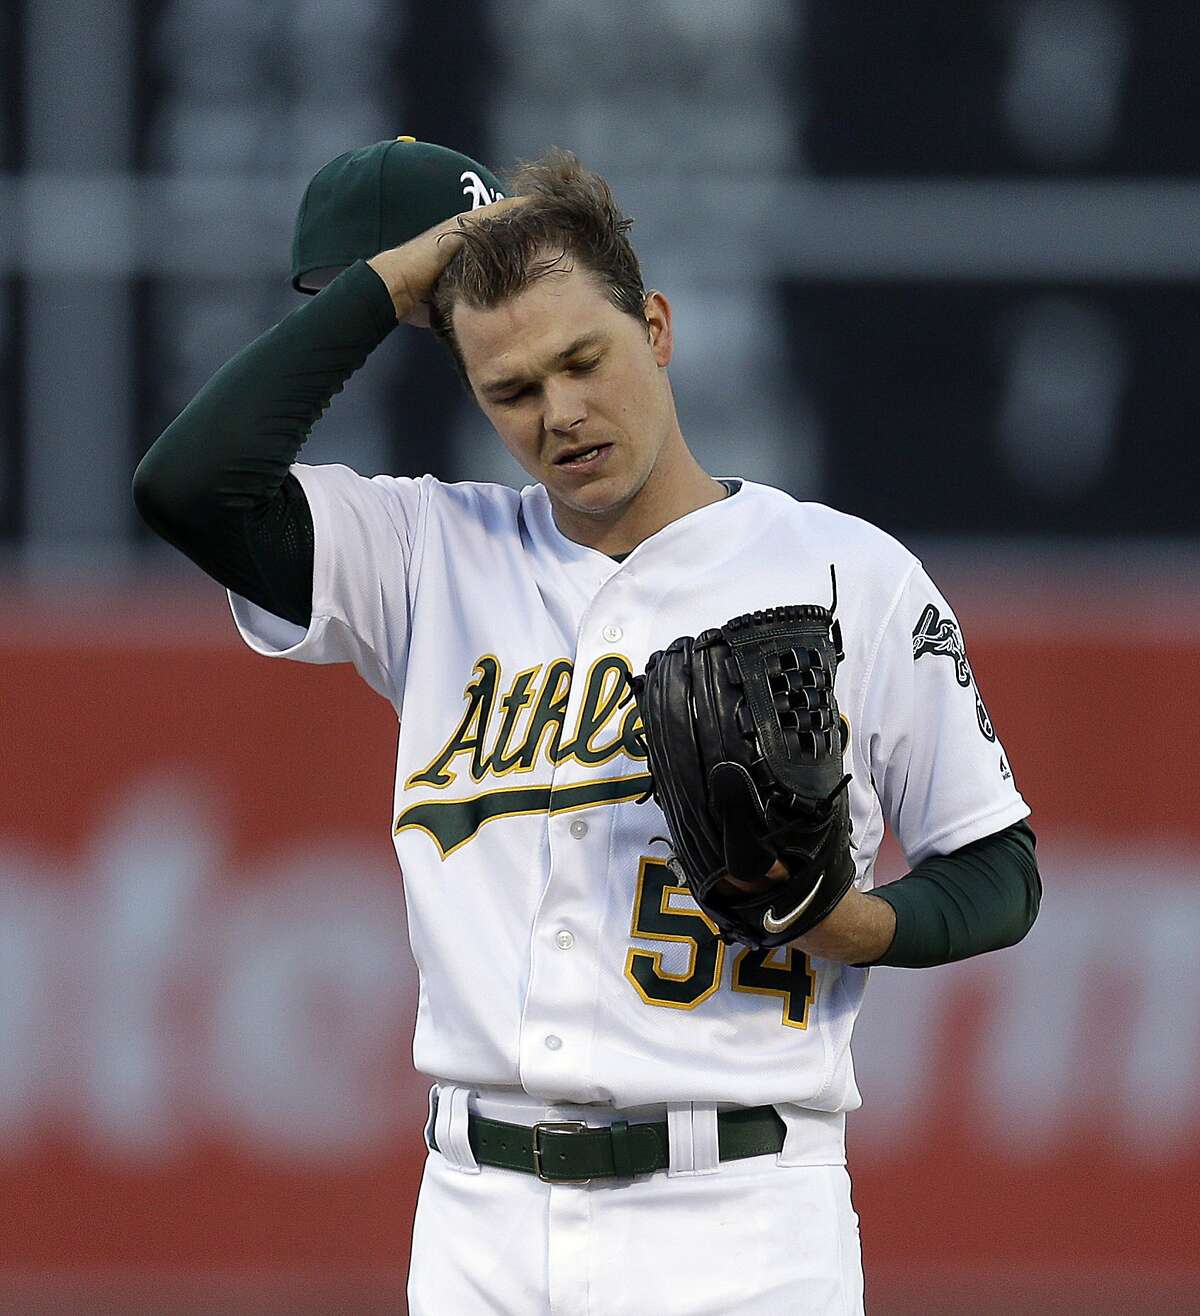 Oakland Athletics pitcher Sonny Gray in the first inning of a baseball game against the Milwaukee Brewers Tuesday, June 21, 2016, in Oakland, Calif. (AP Photo/Ben Margot)